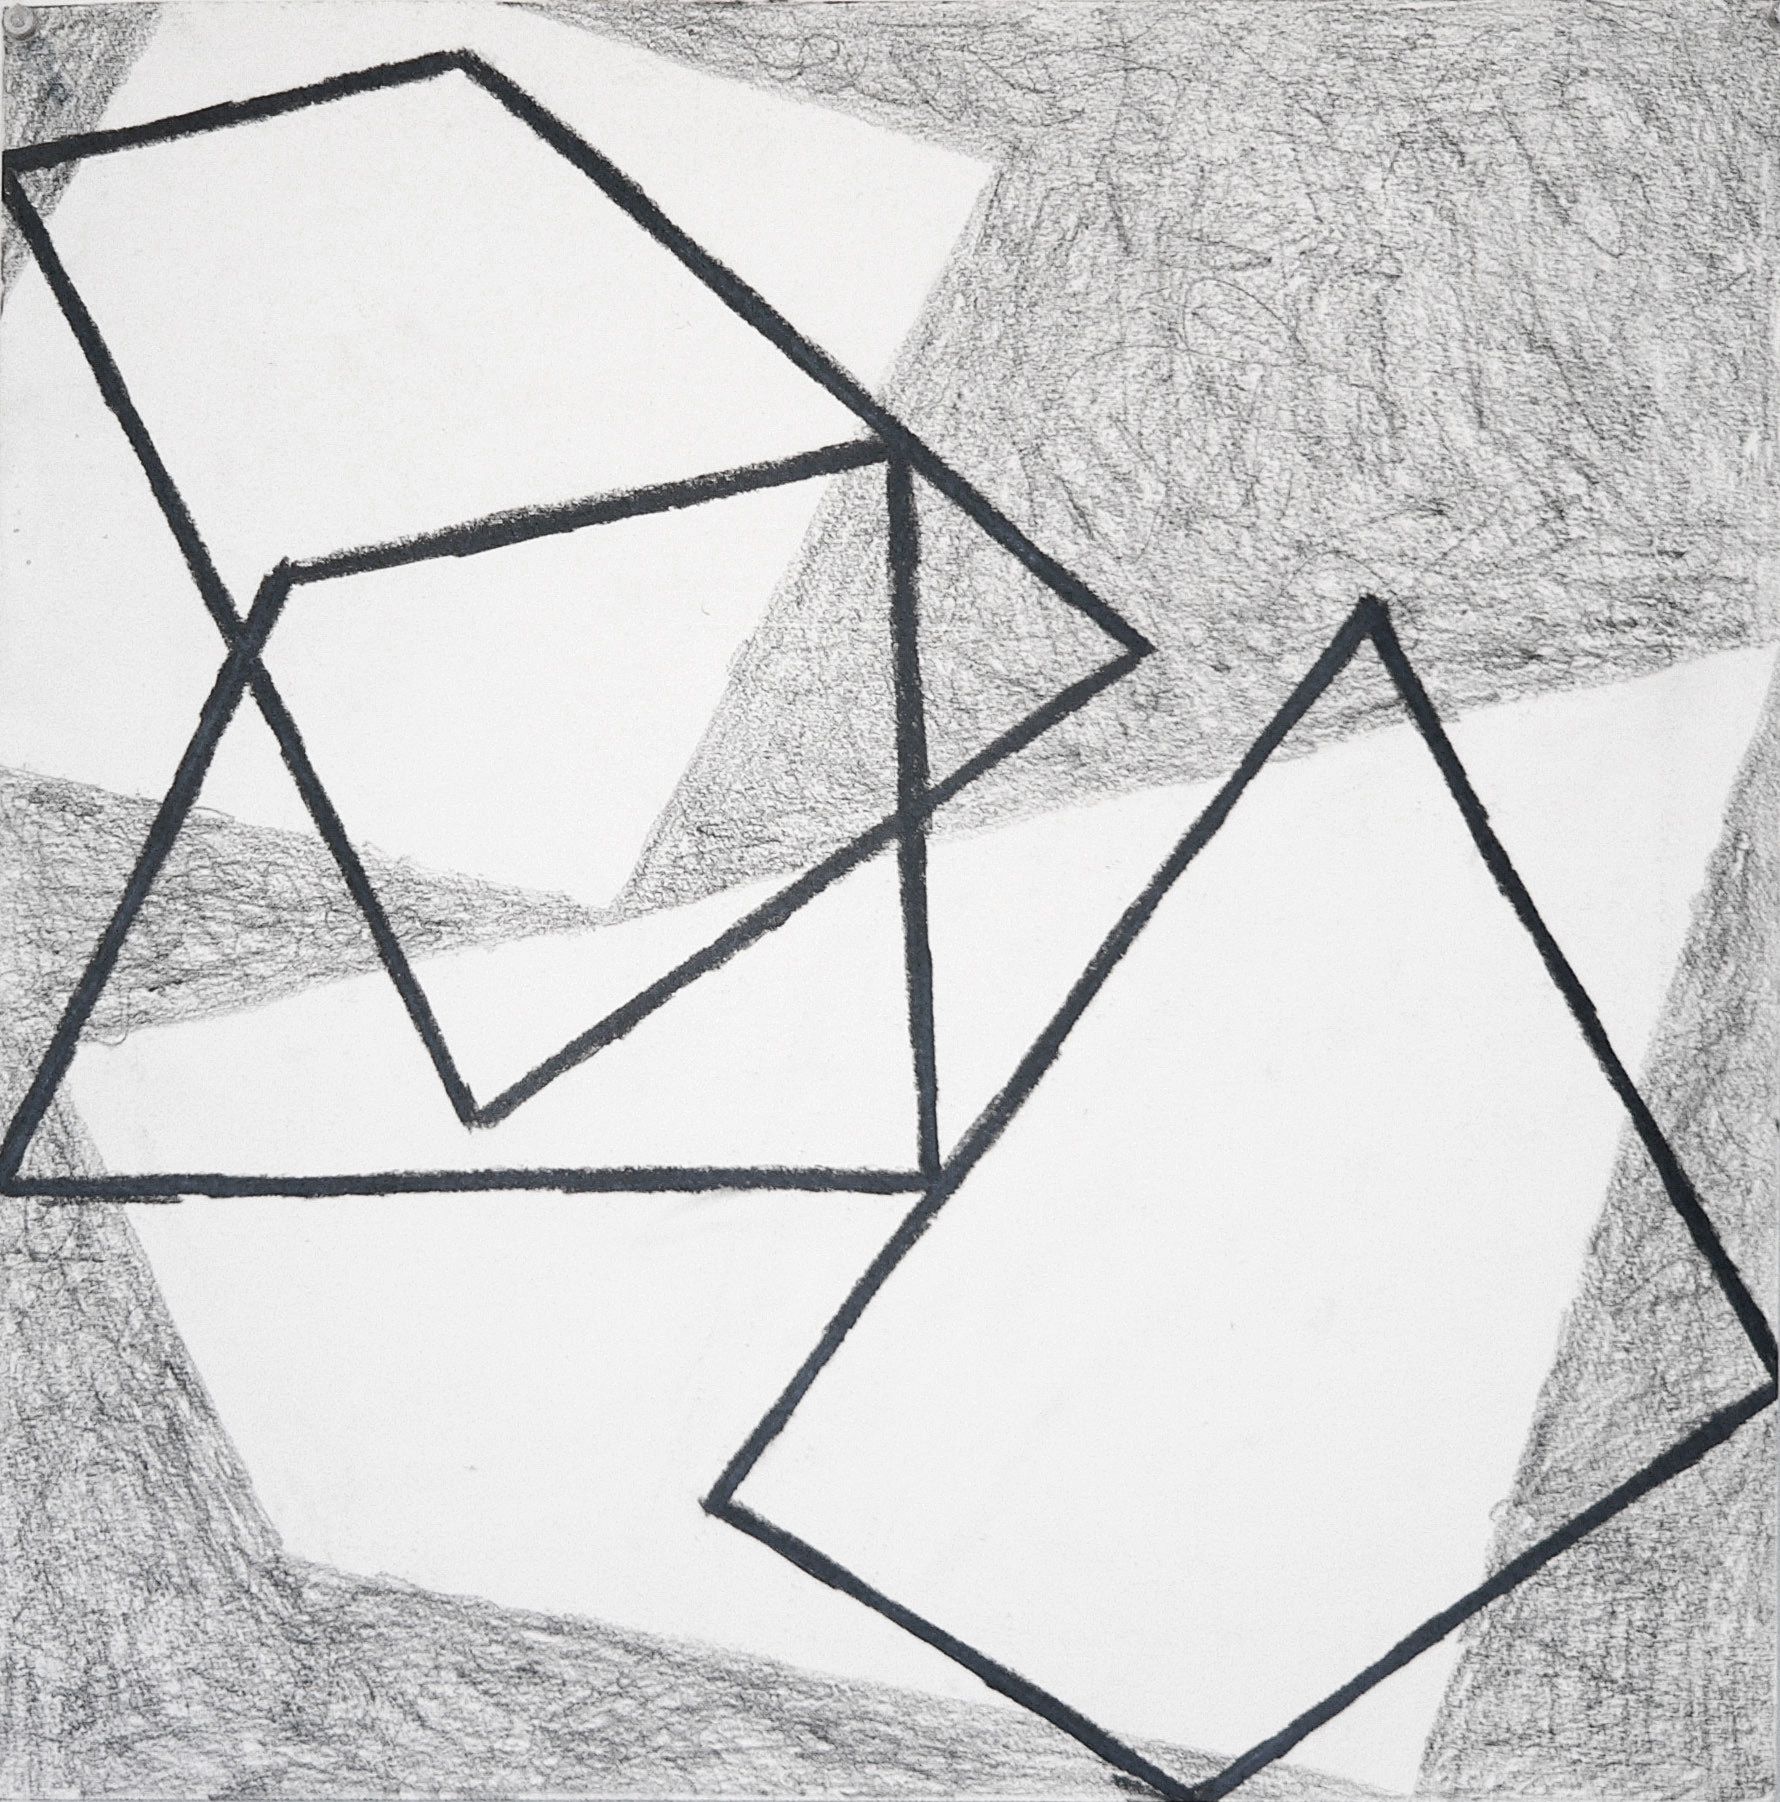 Bounce 3   18 x 18 in  Graphite on Canson Pastelle Paper